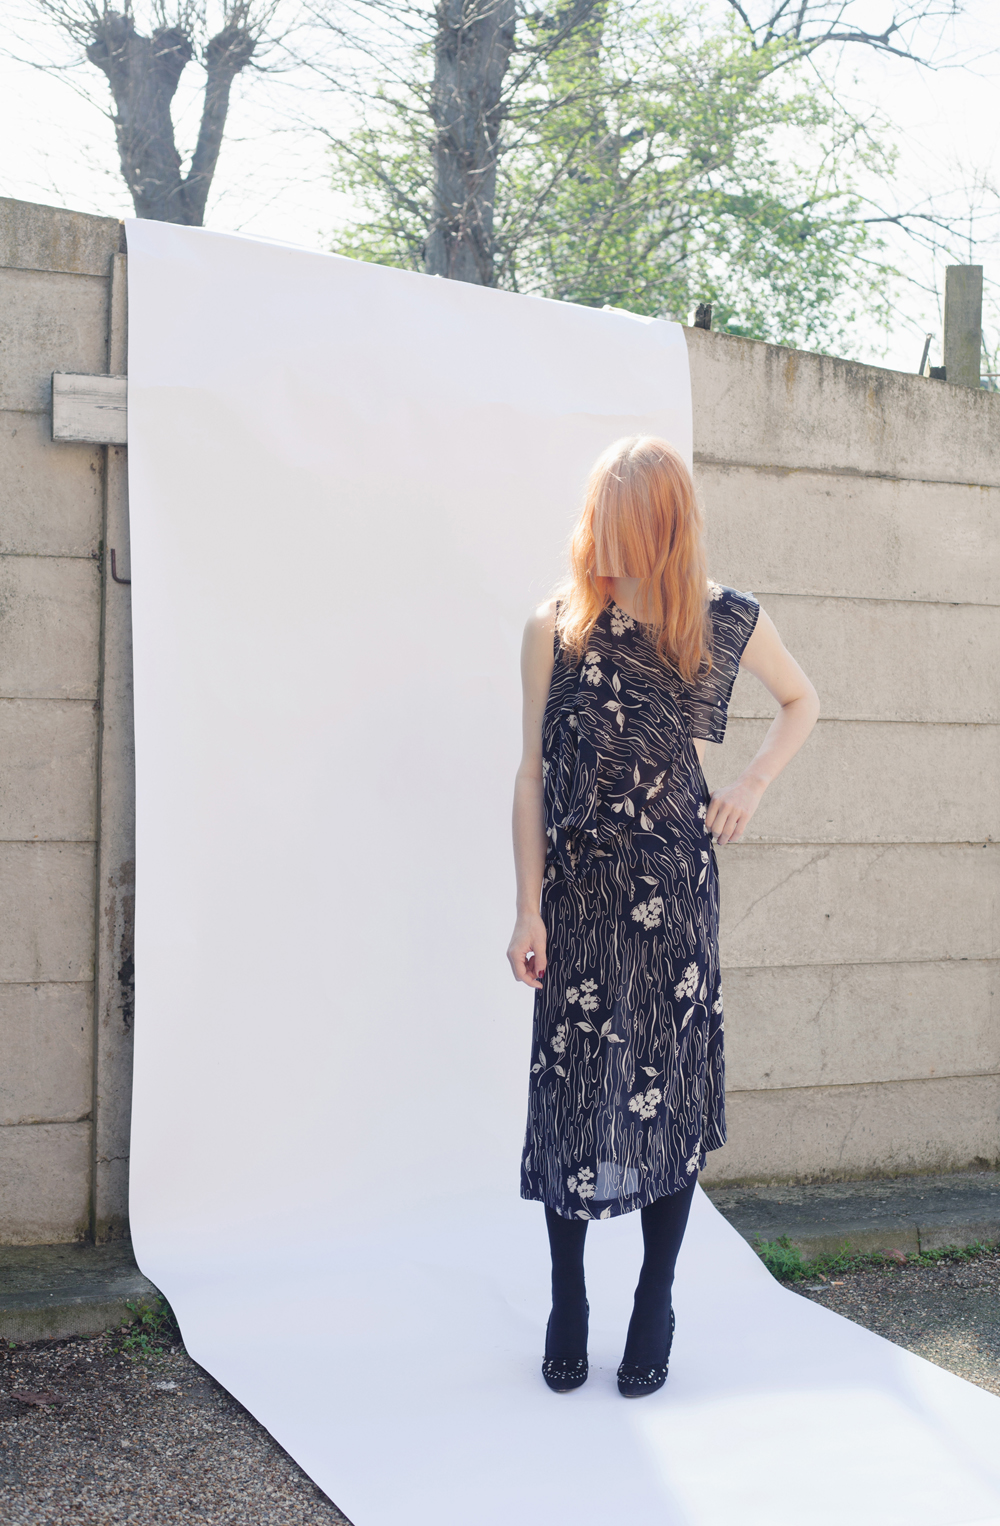 DRESS label Crisis Collection Look book Pixelated ARTISANAL RESCUE DRESS SERIES Rescue Dress 01 – Navy & White Viscose Flower Print Dress-Ltd